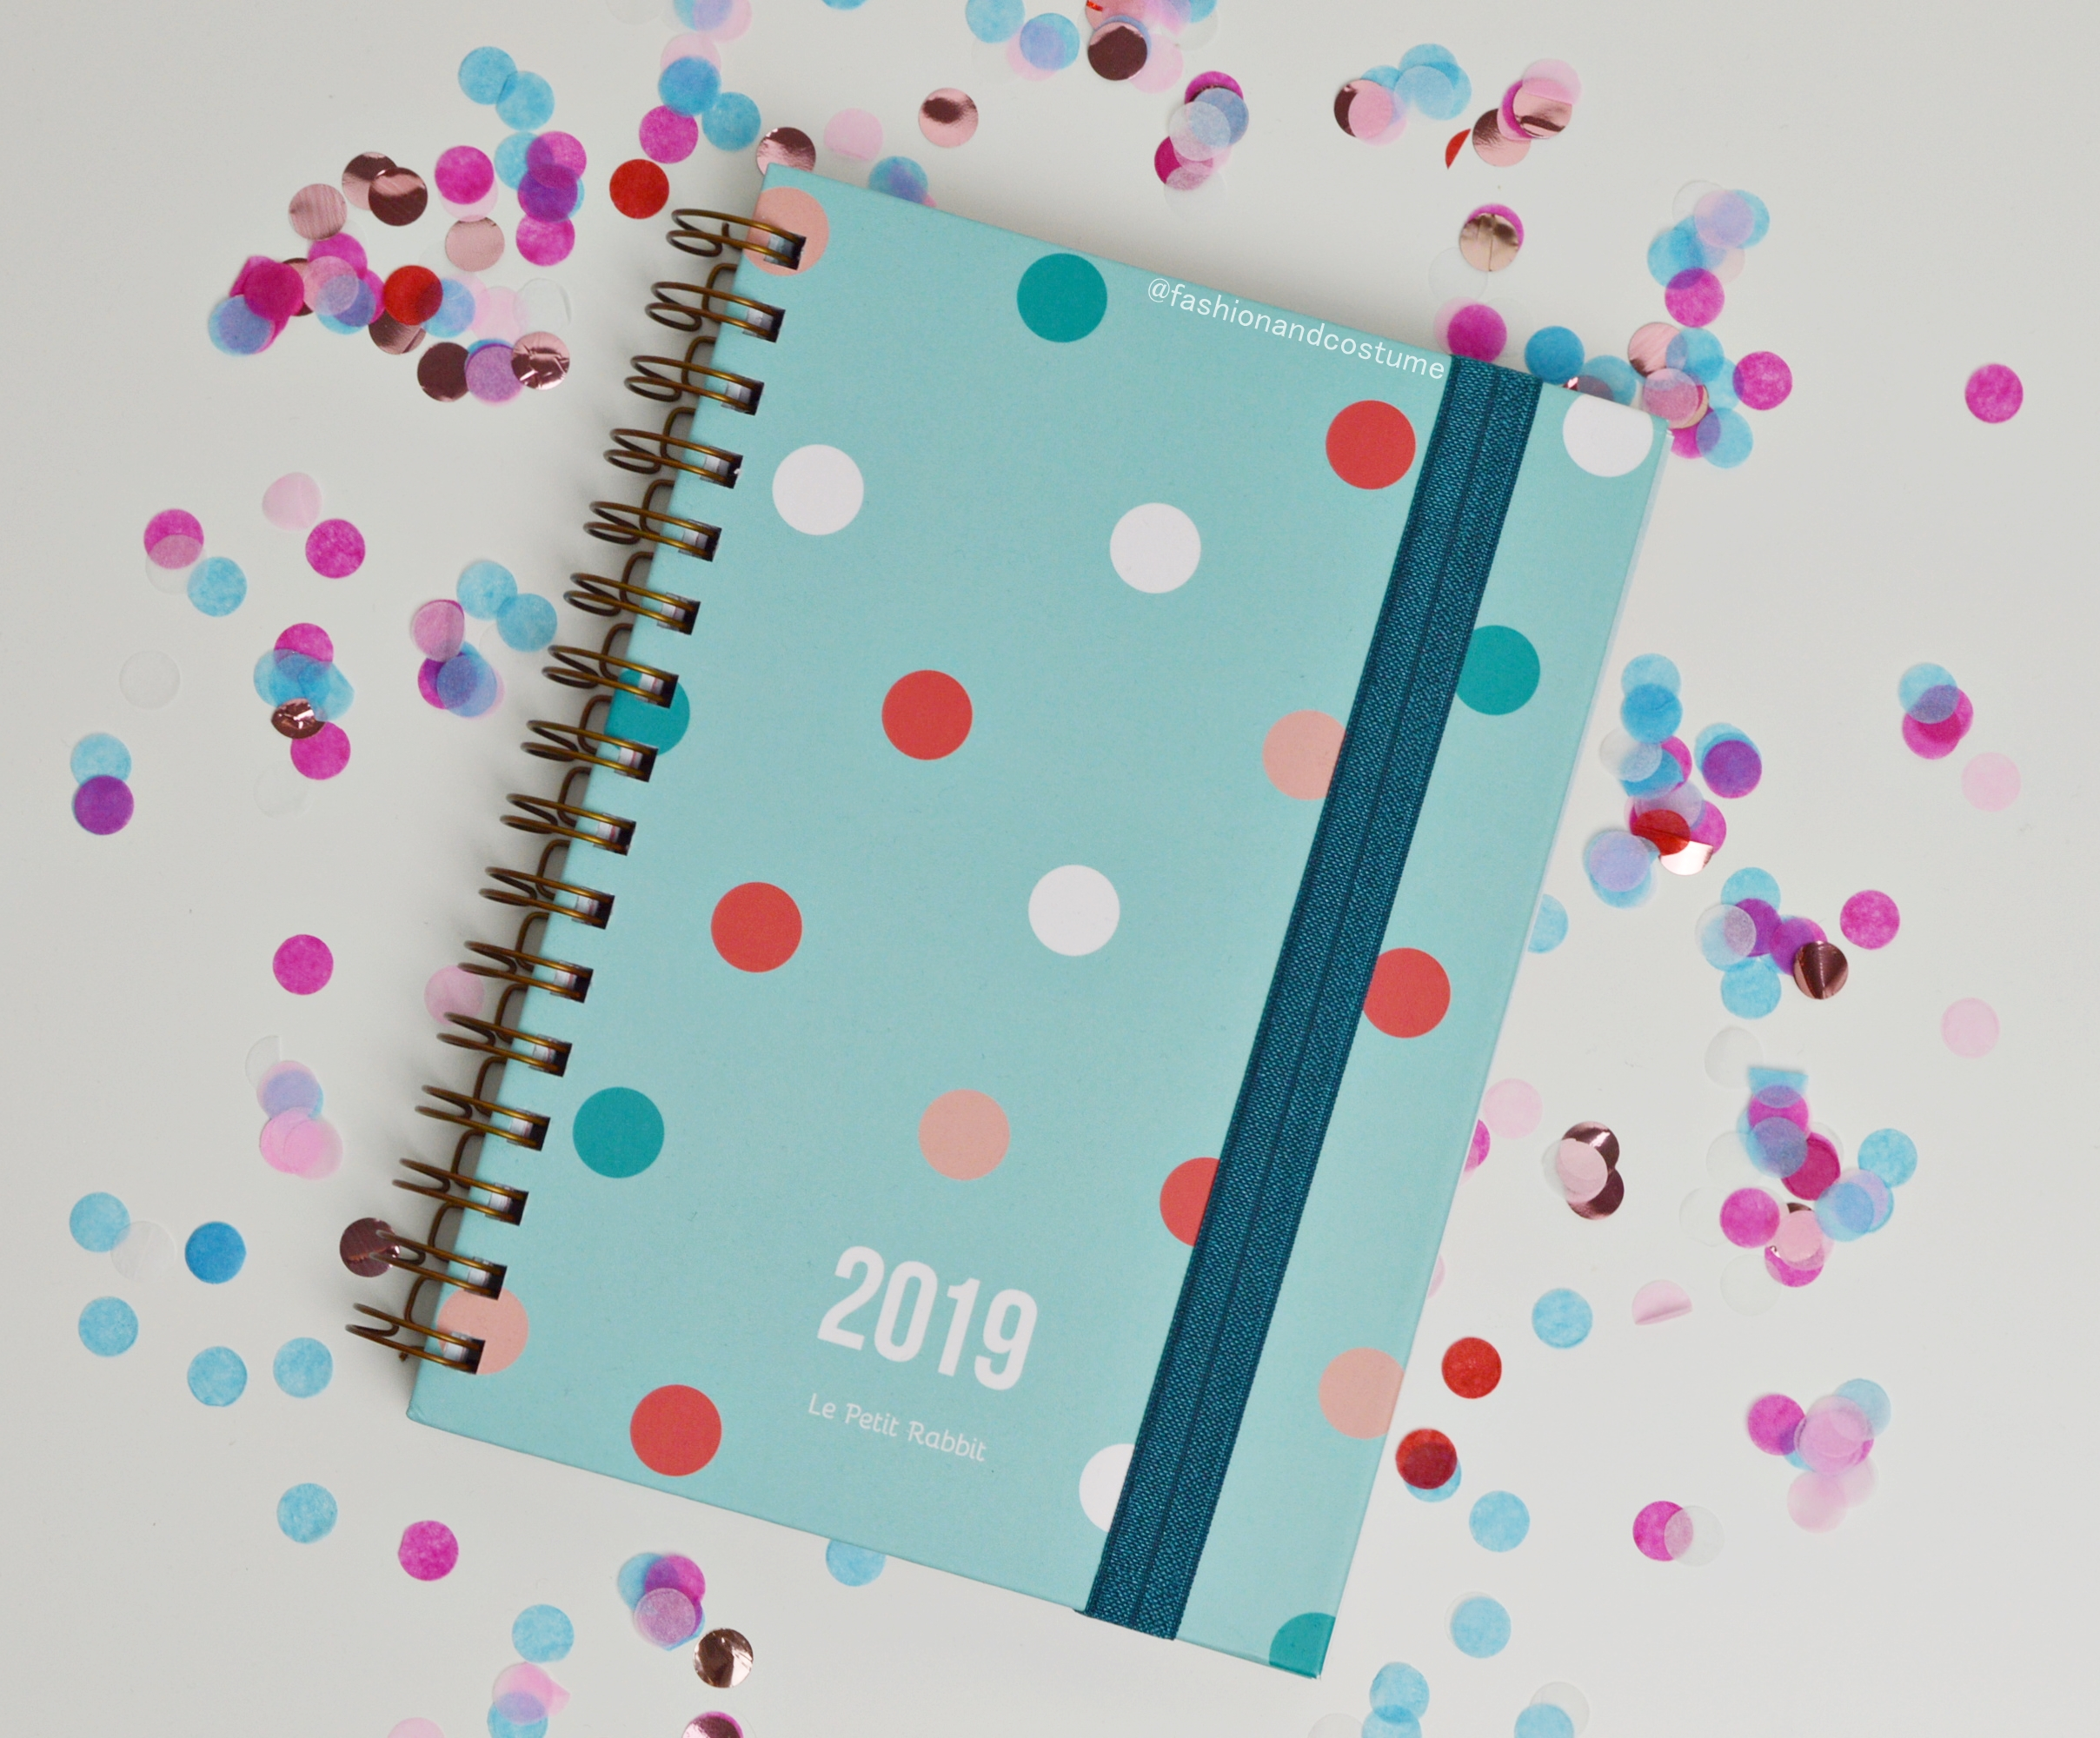 agenda-planner-2019-settimanale-weekly-giulia-lepetitrabbit-le-petit-rabbit-fashion-and-costume-fashionandcostume-graphic-designer-sticker